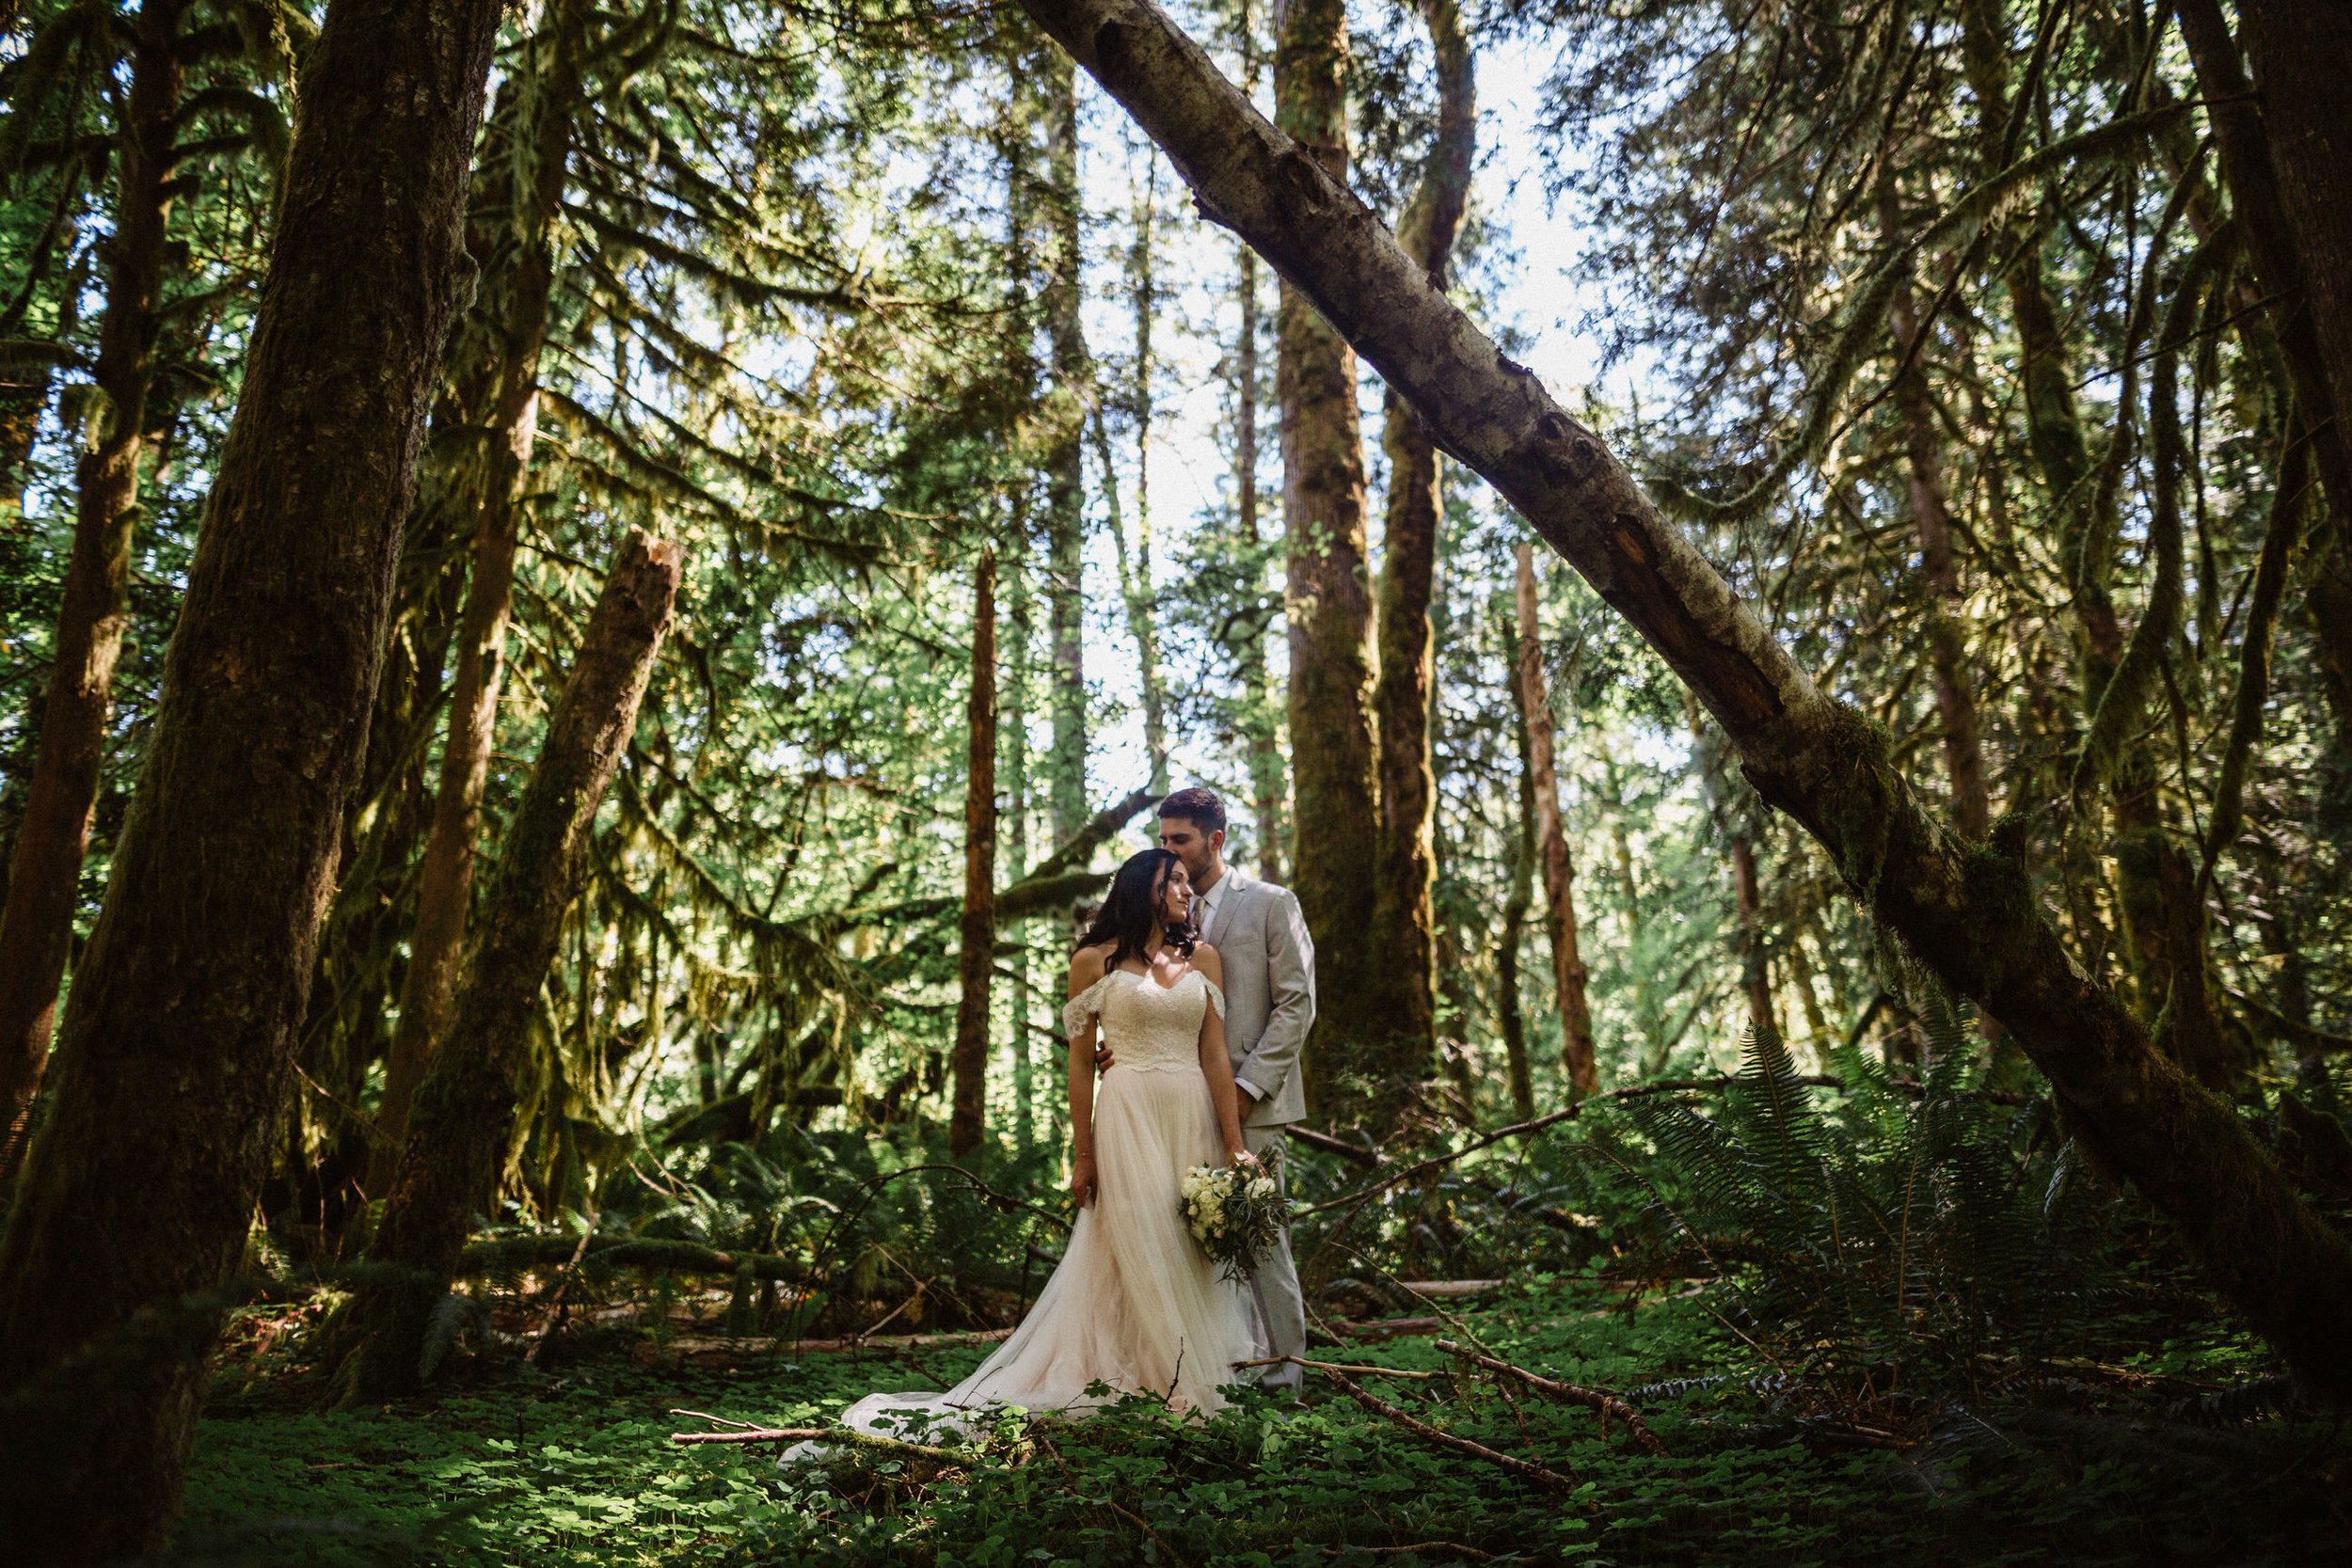 MT Hood Wildwood elopement wedding oregon portland photography0074.JPG